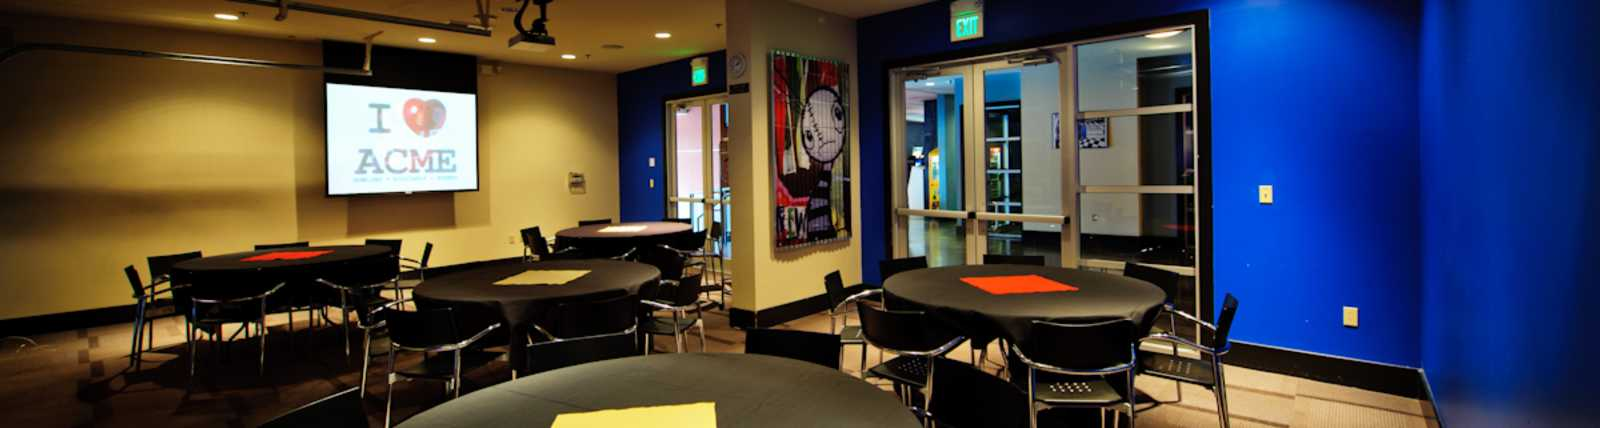 meeting-facility-ACME_Bowling__Billiards_and_Events_Meeting_Facility.jpg